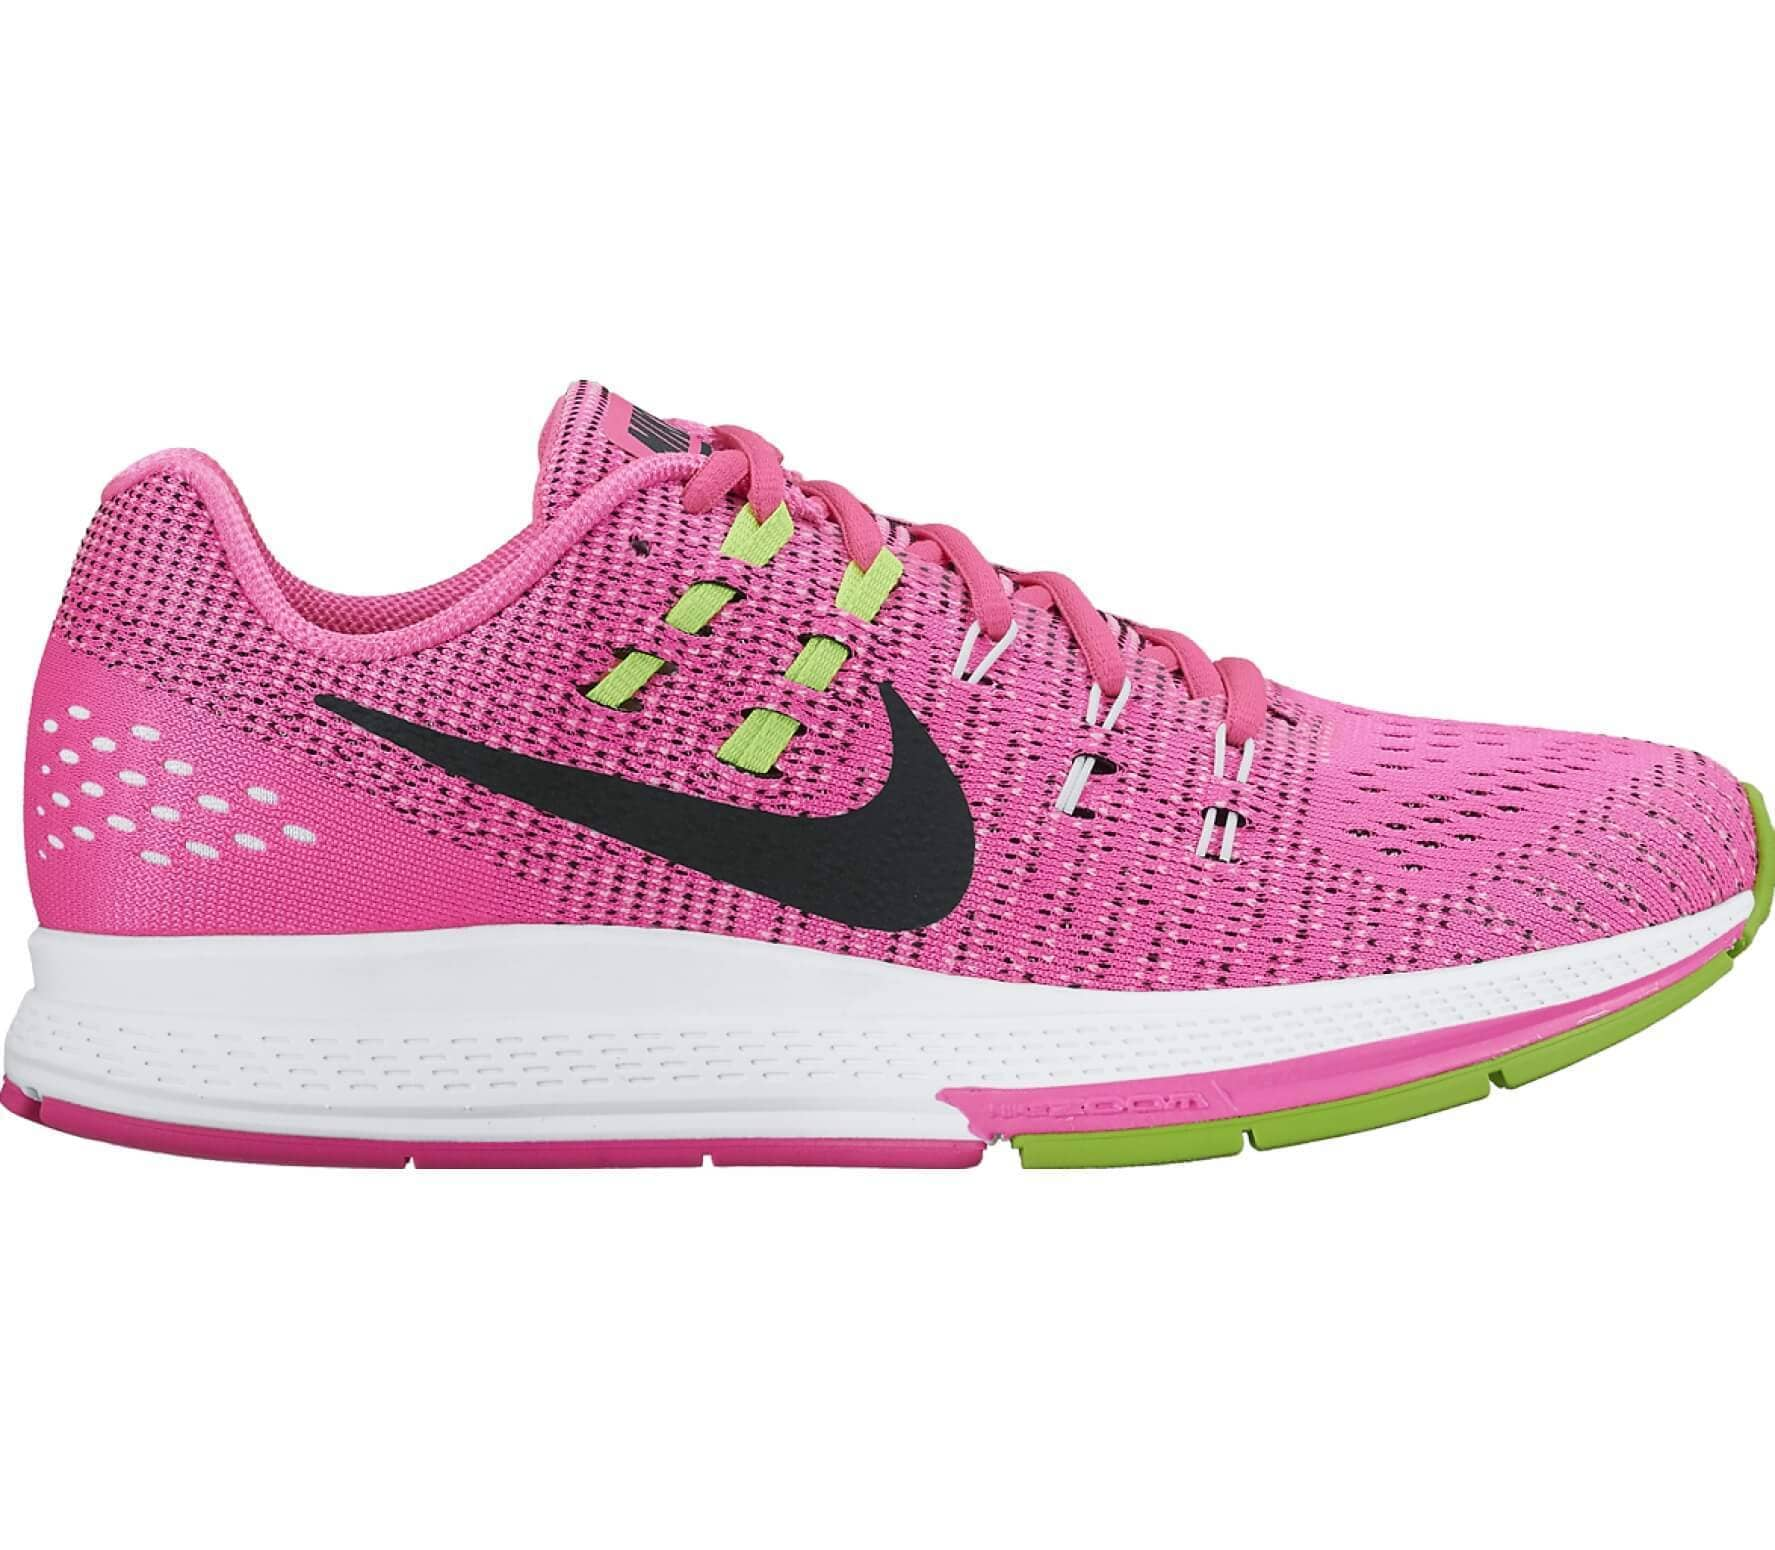 new concept 9c8c7 4172b Air Zoom Structure 19 women s running shoes (pink light yellow)